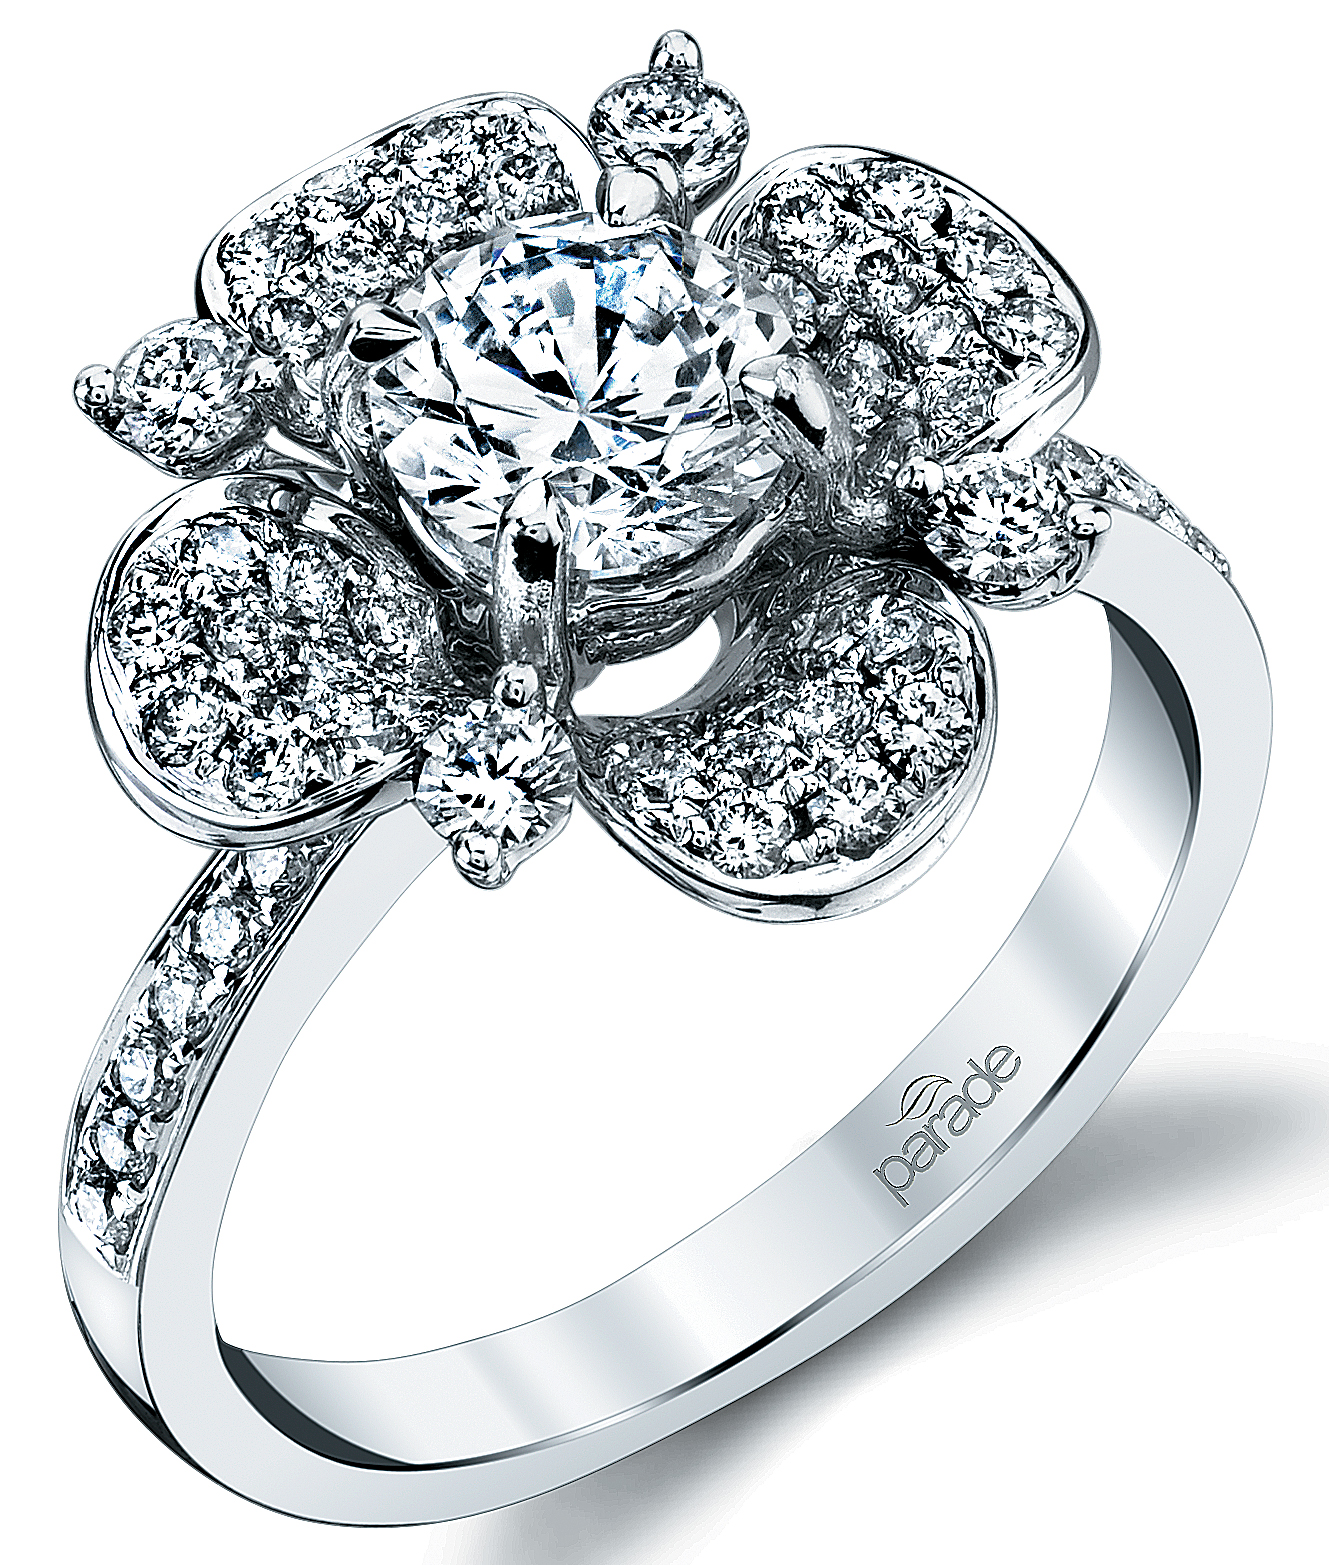 While the more unusual cuts of diamonds have been gathering momentum - Bridal May 2016 Floral Engagement Rings More